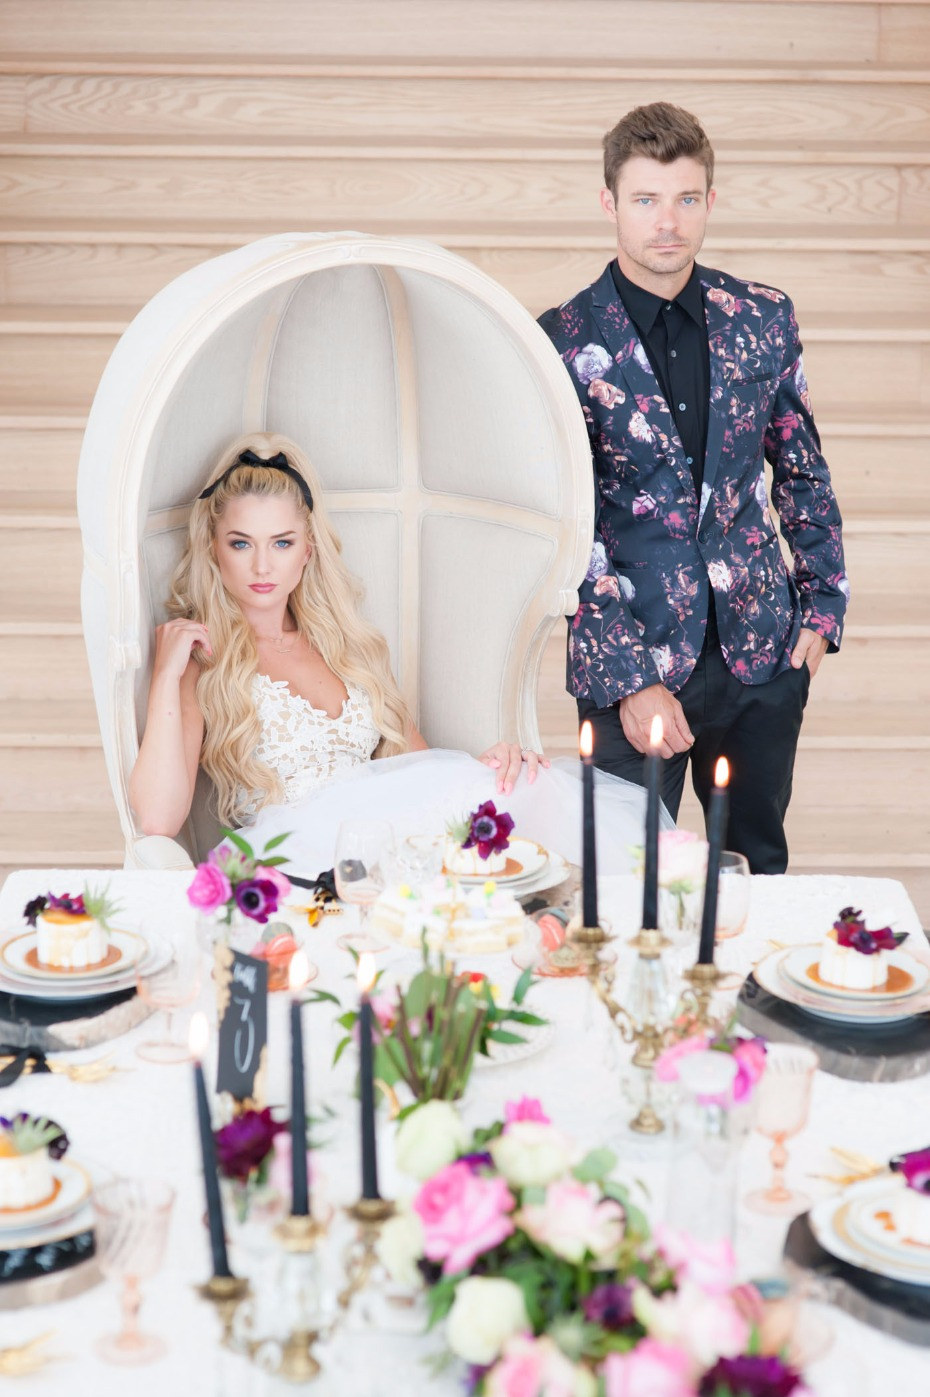 Edgy Alice in Wonderland wedding